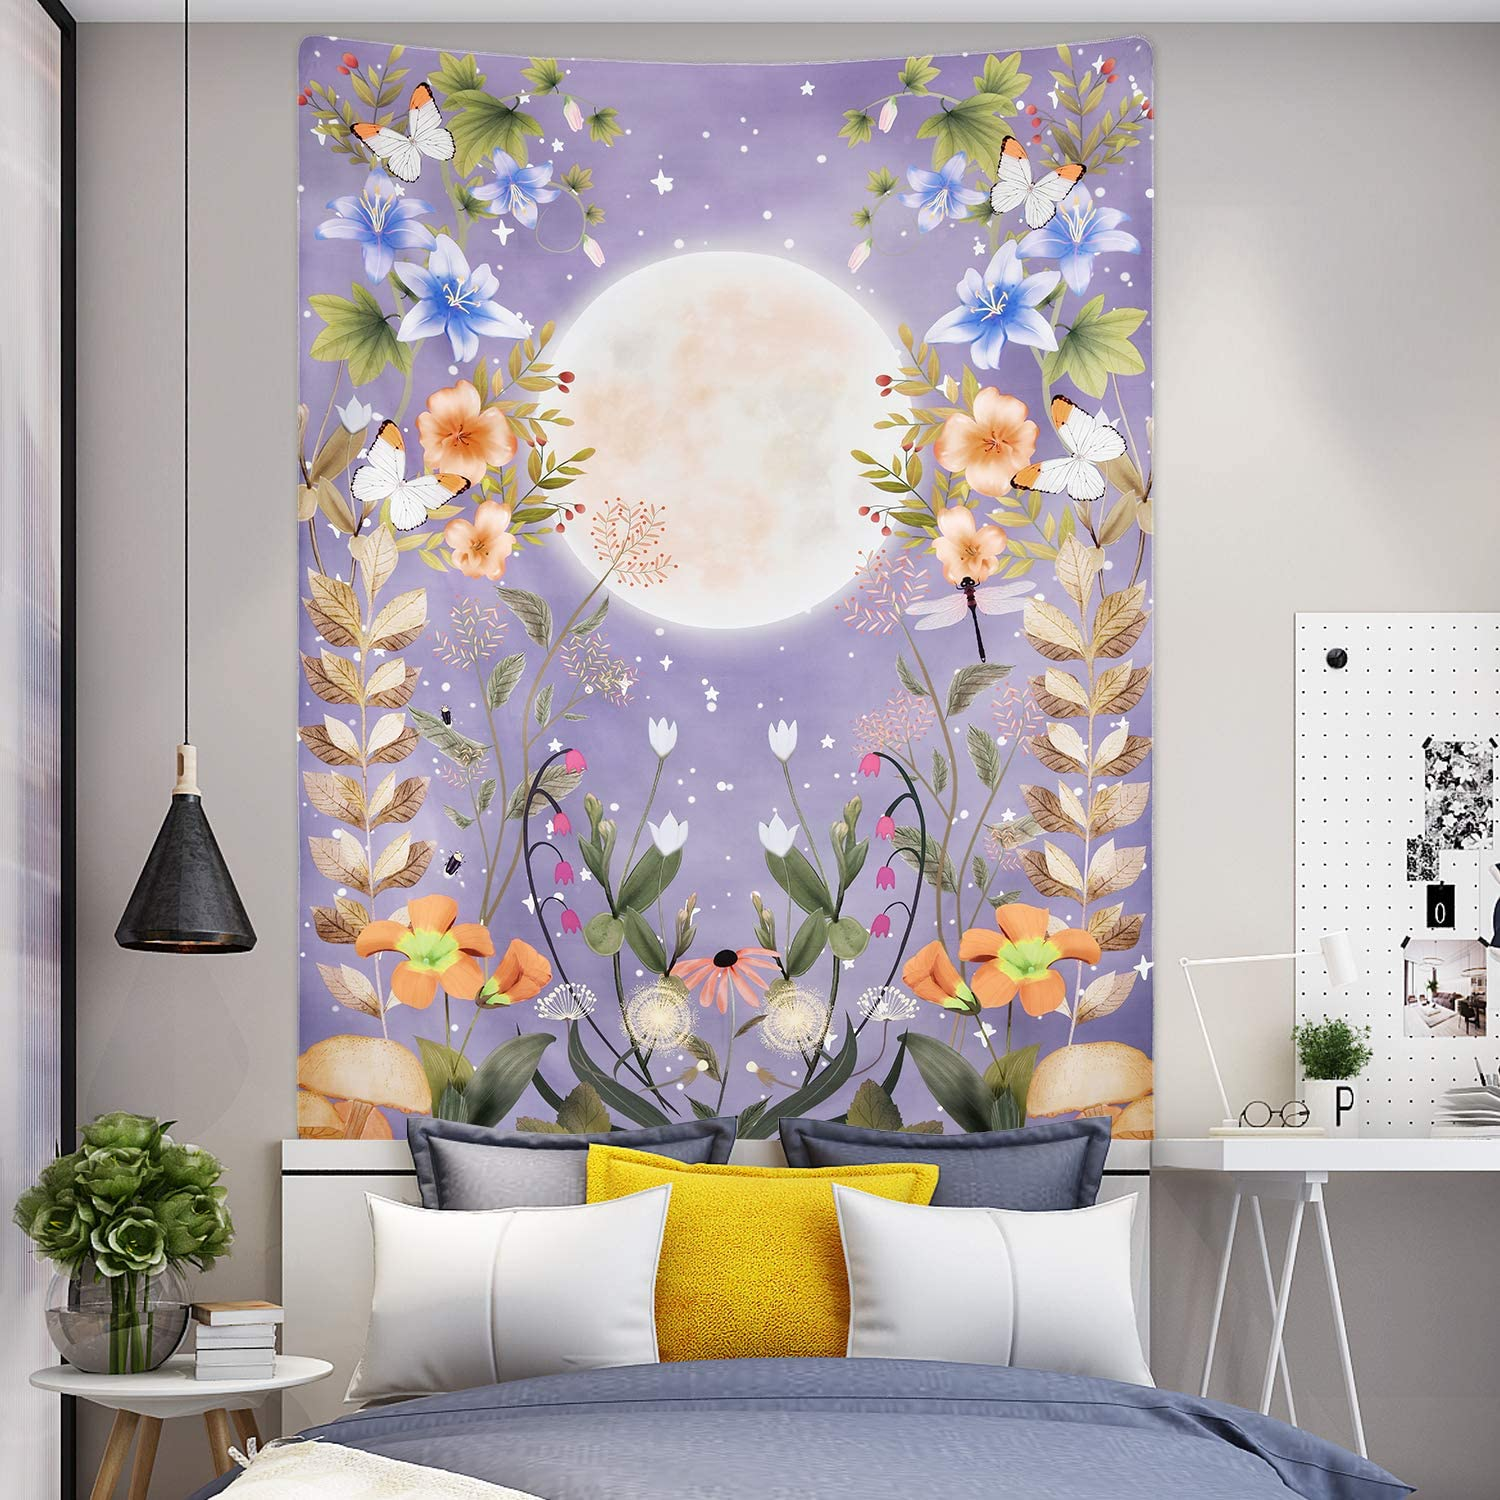 Moonlit Garden Tapestry, Moon Tapestry Floral Vine Tapestry Purple Background Flowers Tapestry Wall Hanging for Room (51.2 x 59.1 inches)